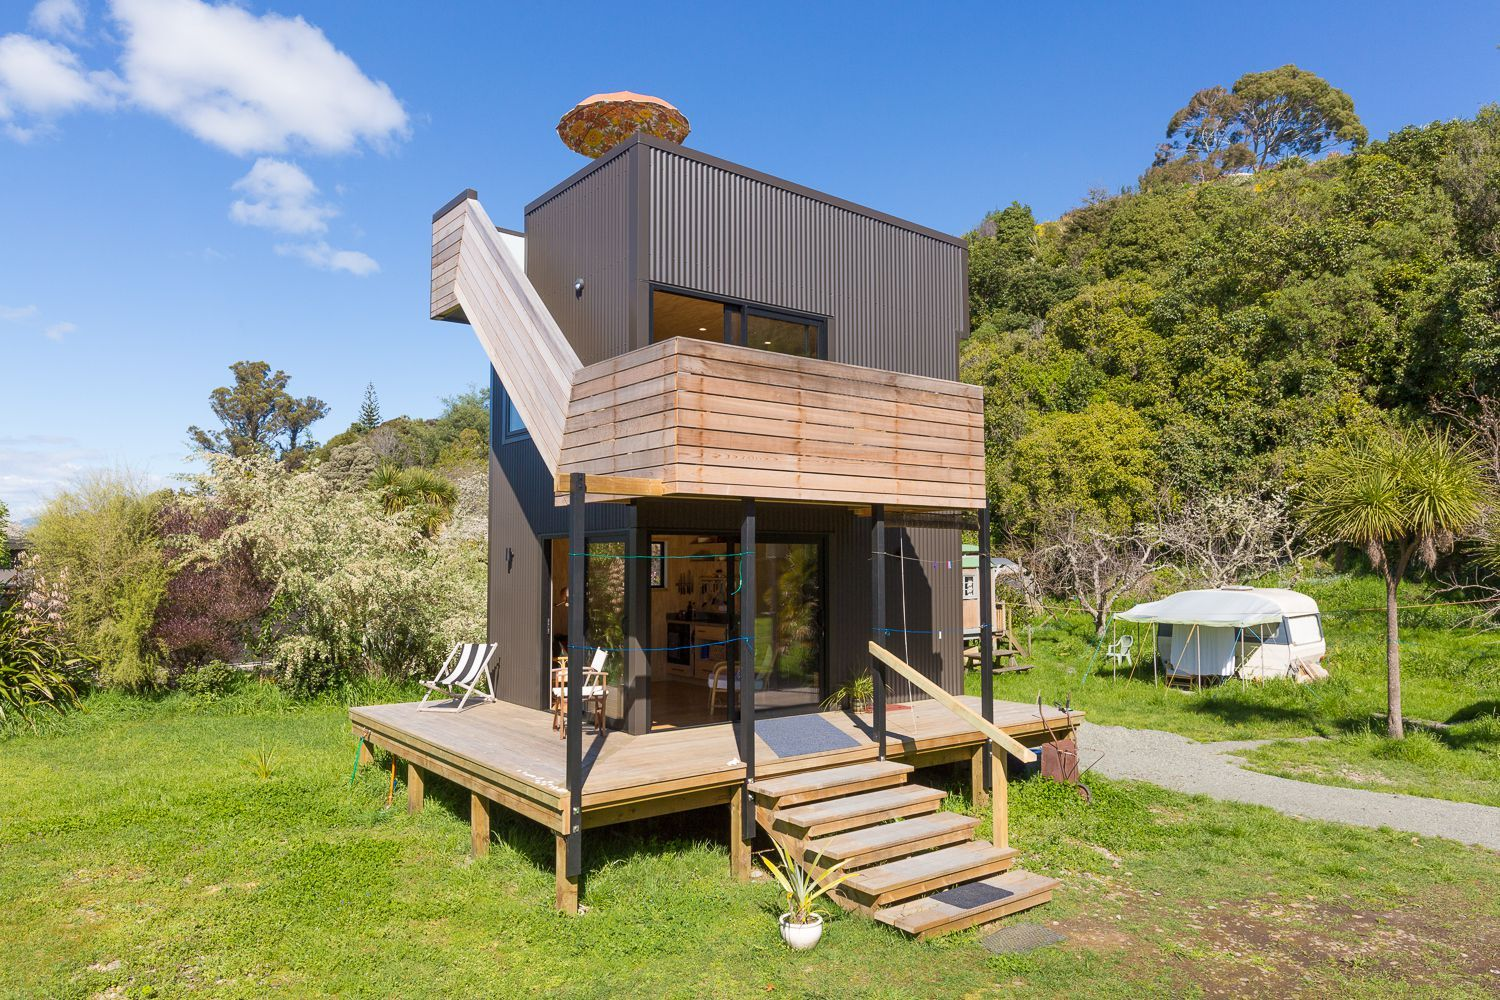 Ruby Tower is a unique tiny house